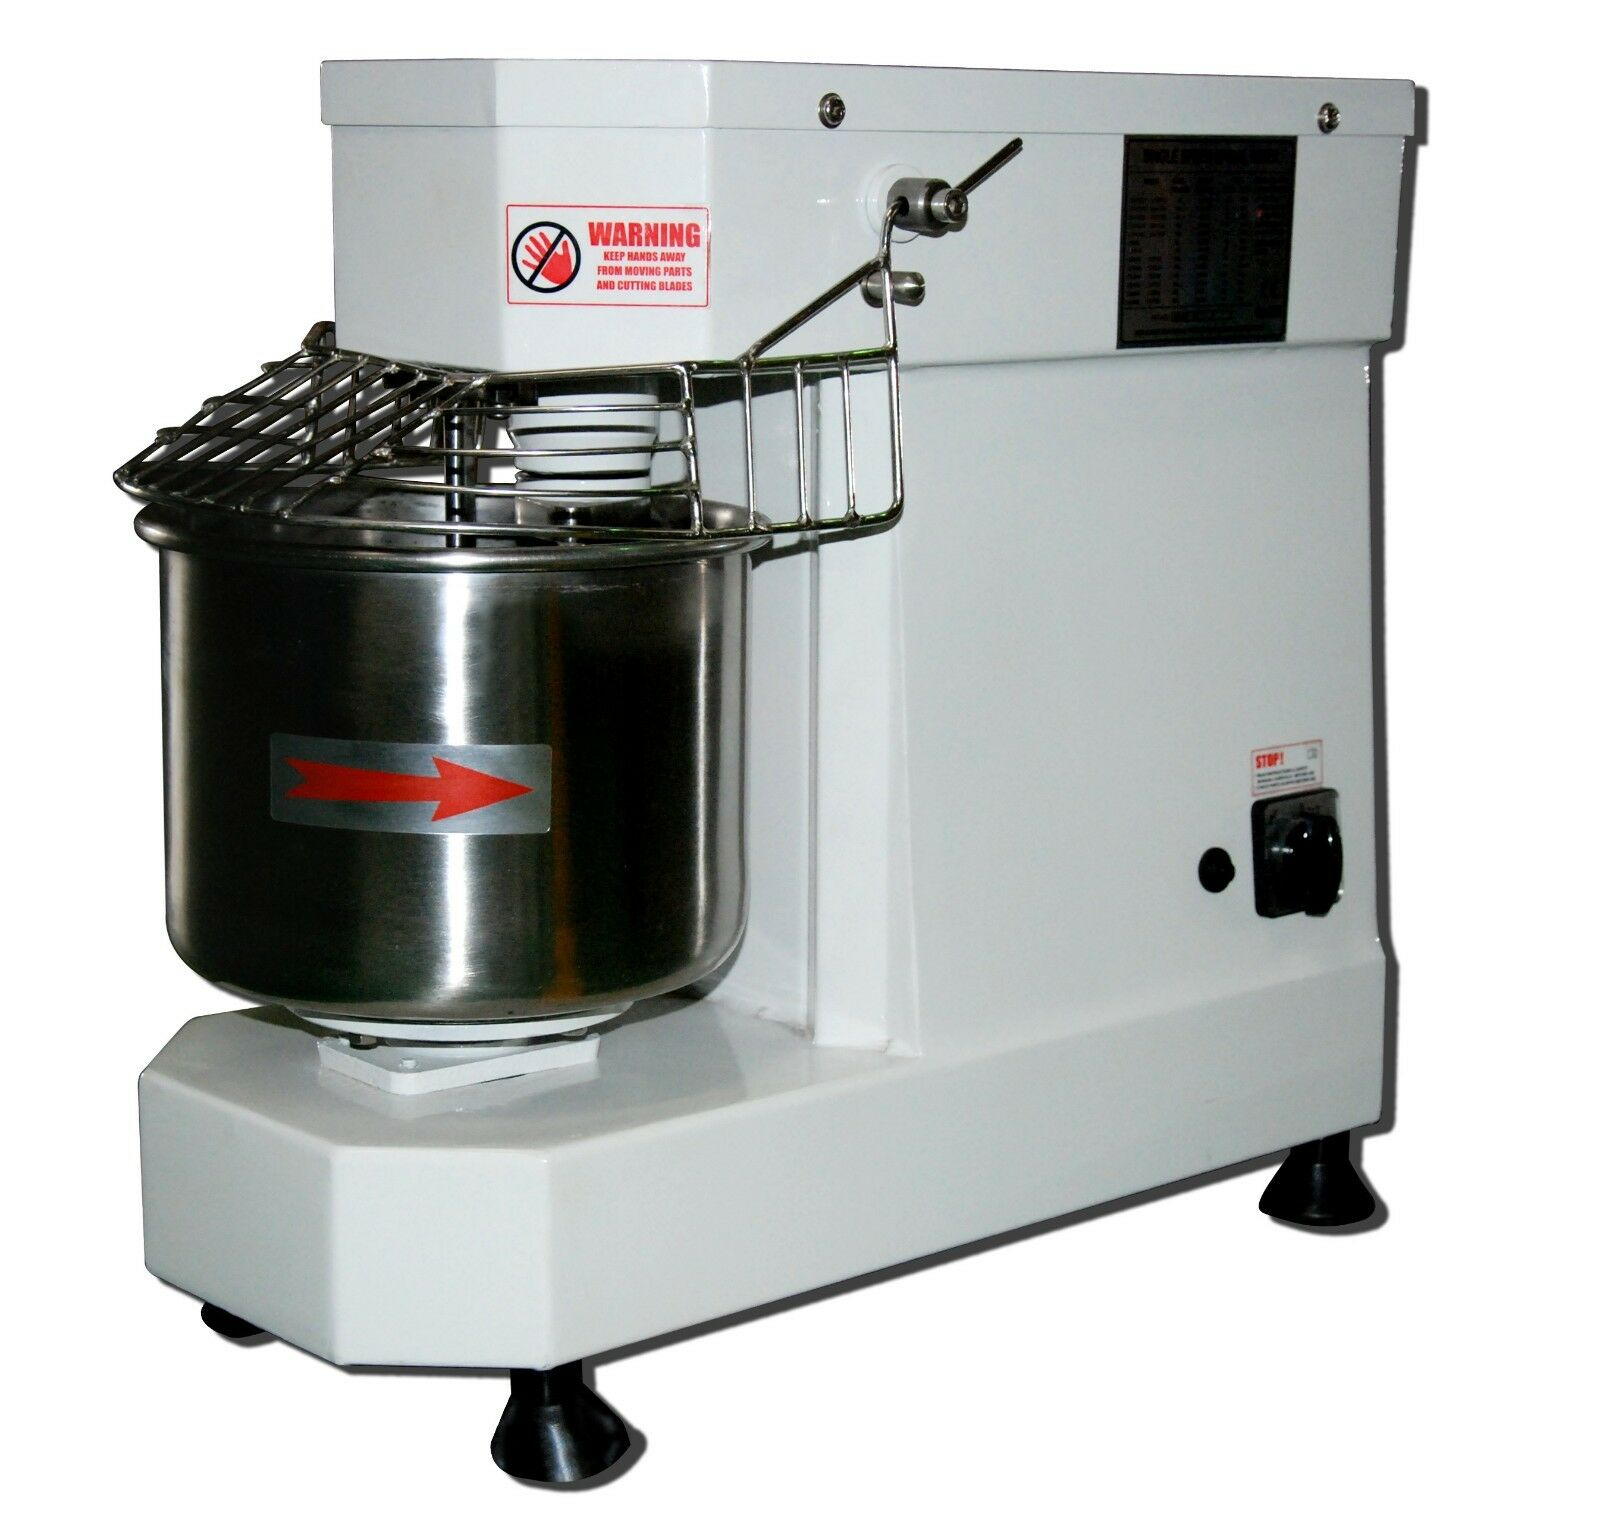 Hakka Commercial Food Dough Mixers 5 Quart Pizza Bakery Spiral Mixer DN5